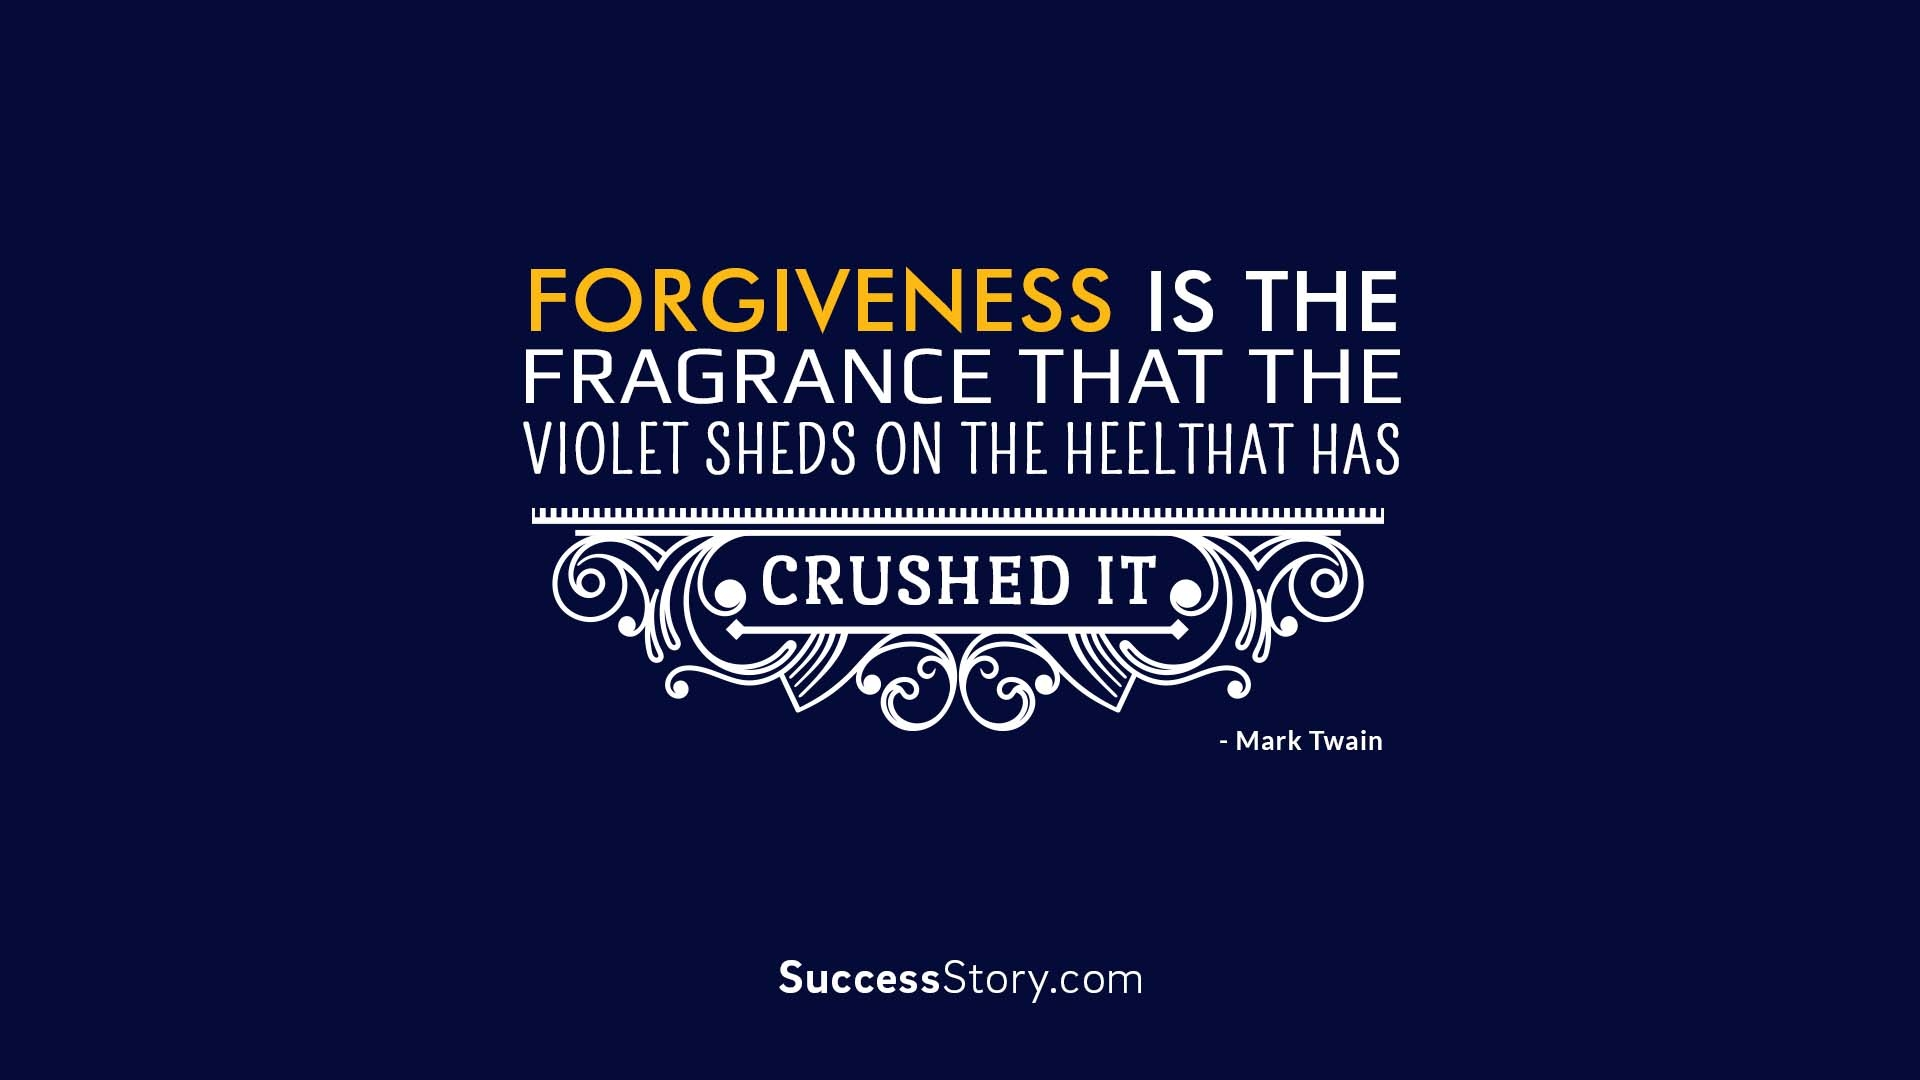 Forgiveness is the fra